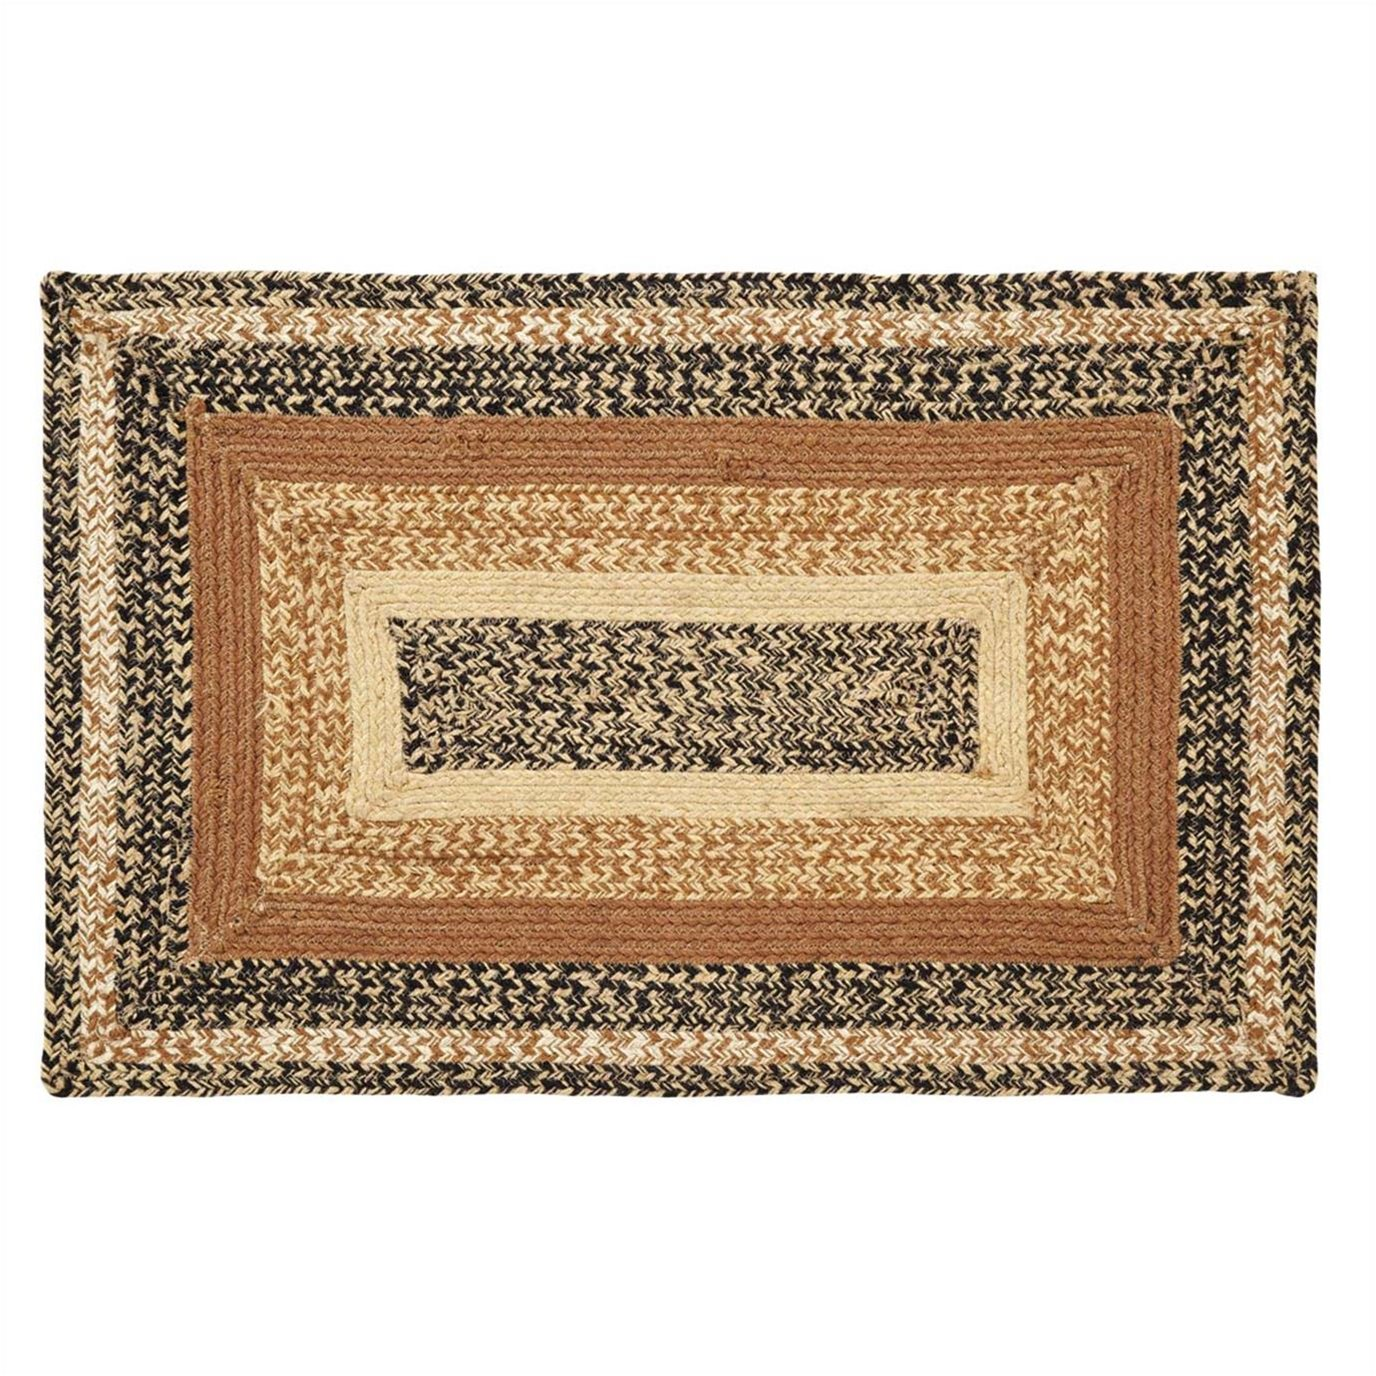 Kettle Grove Jute Rug Rectangular 24x36